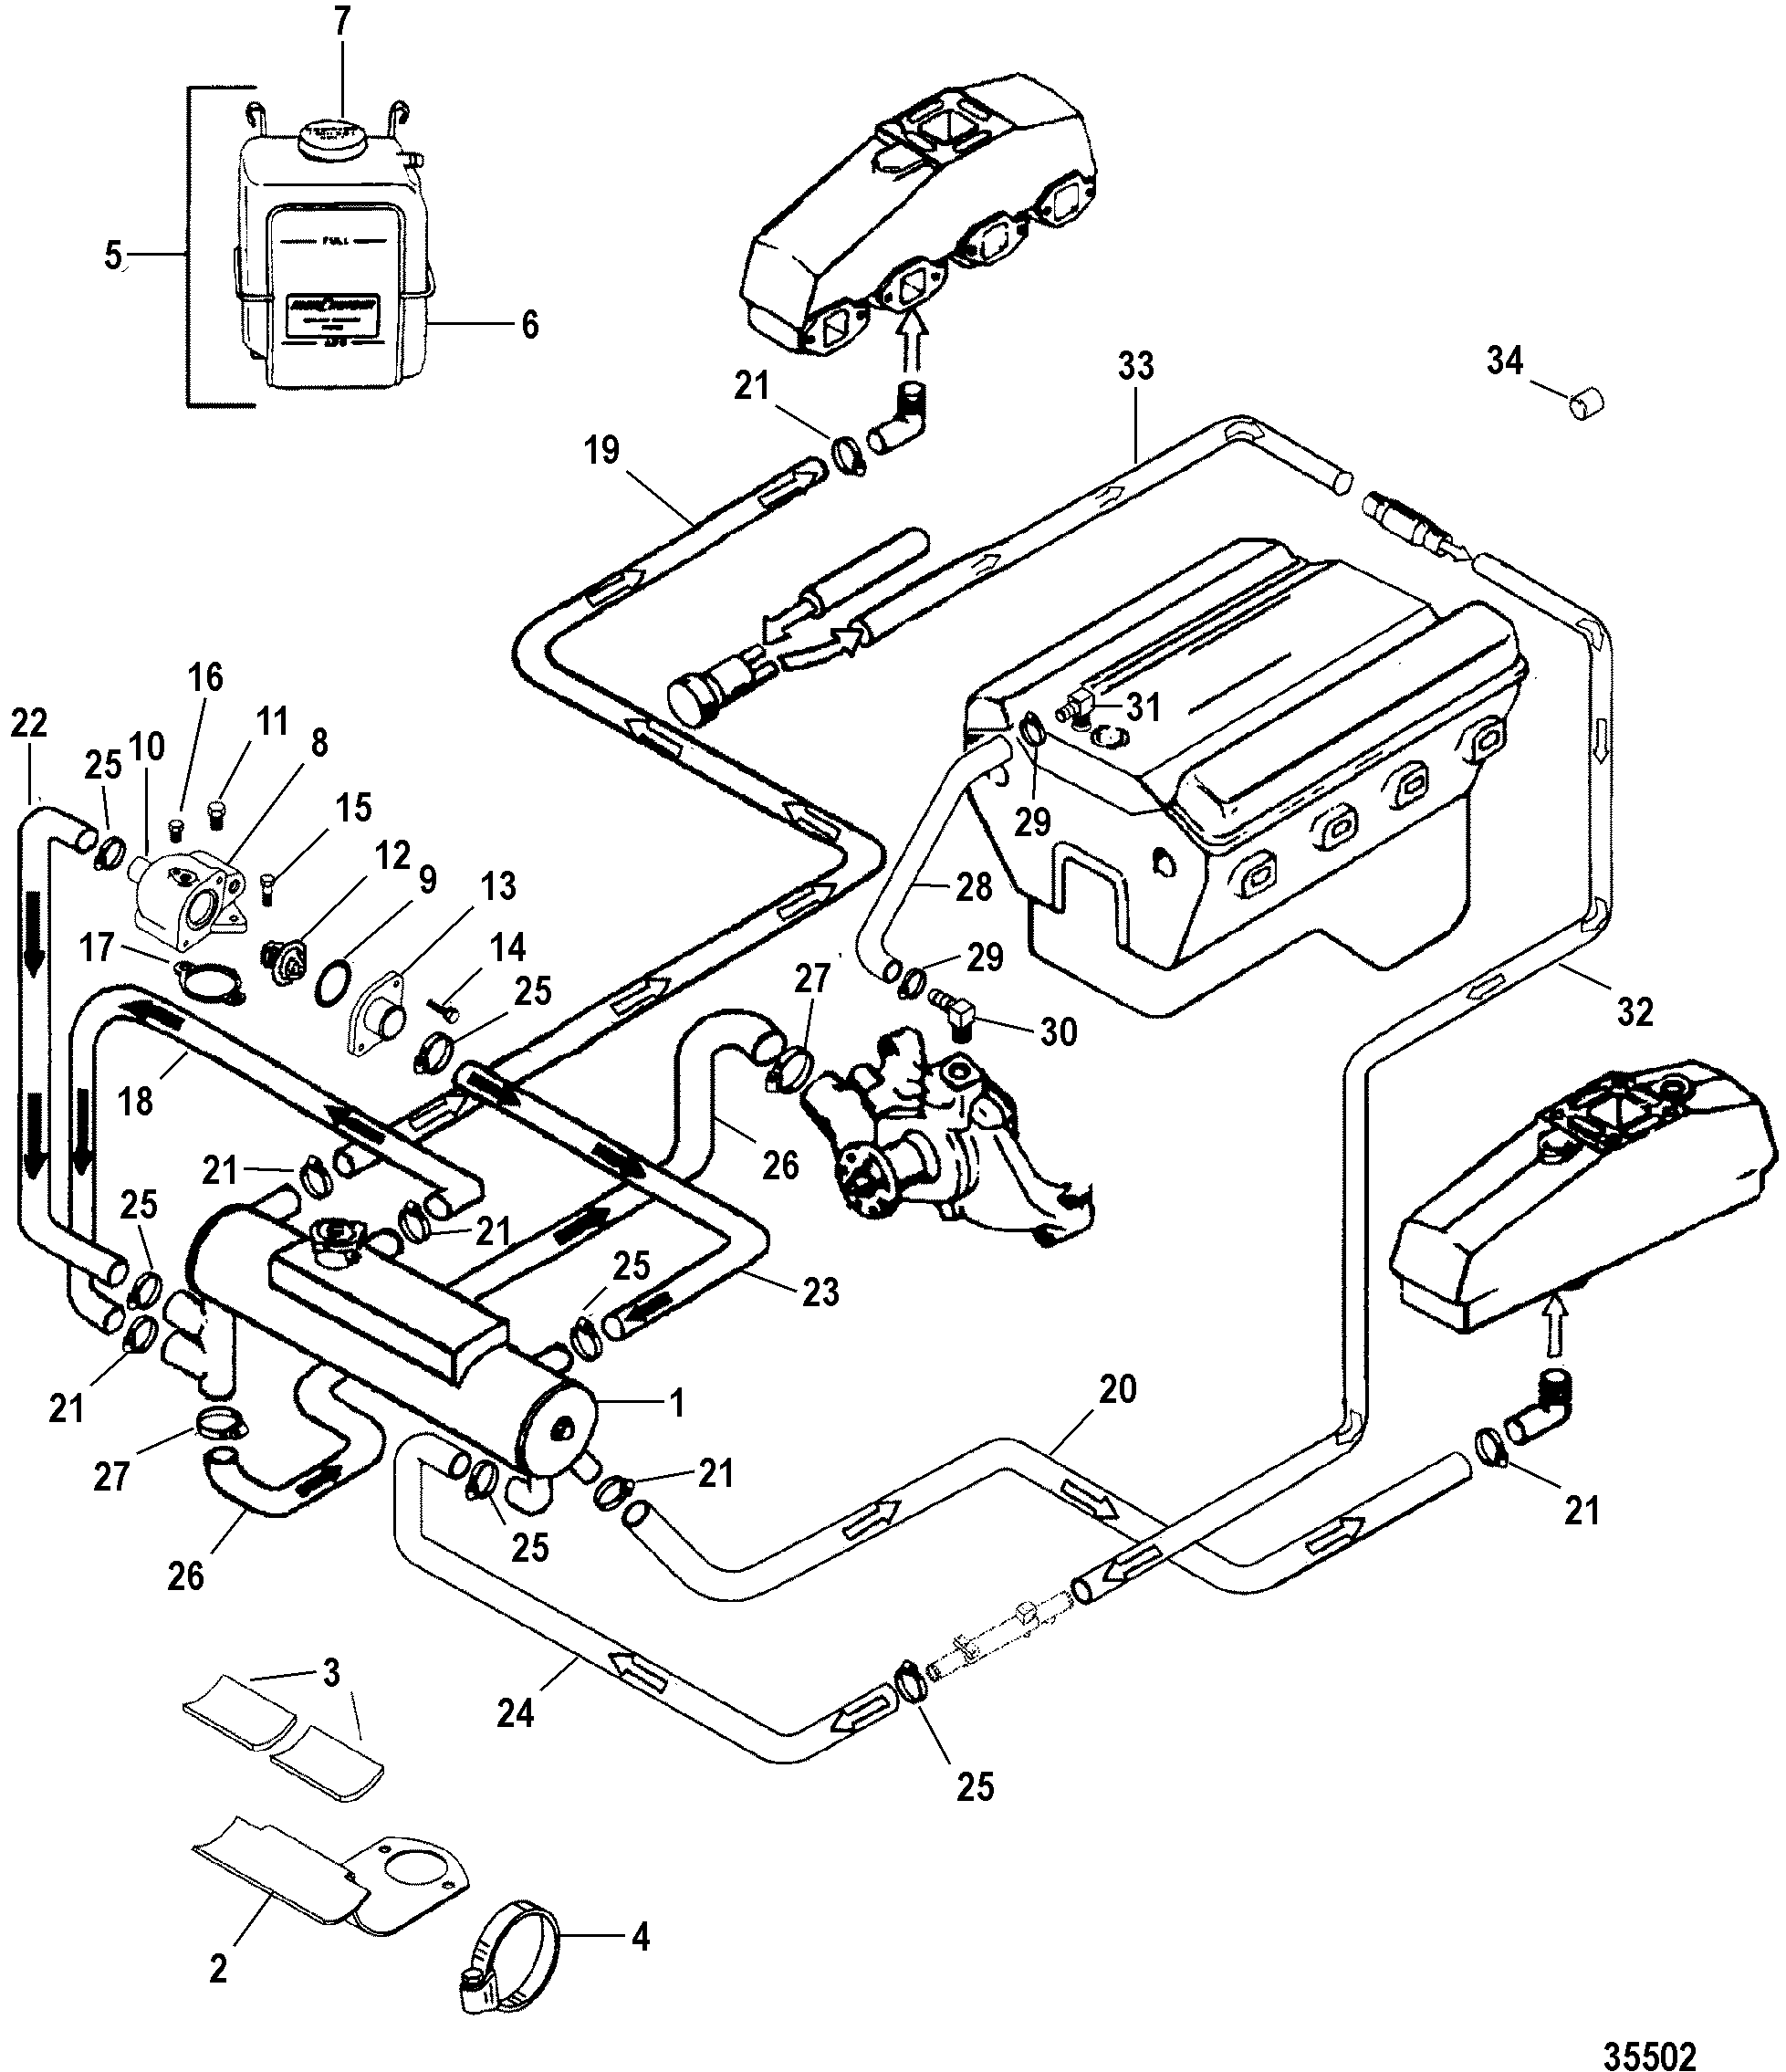 Mercruiser 5 7 Exhaust Diagram Electrical Wiring Diagrams Cooling System Library Of U2022